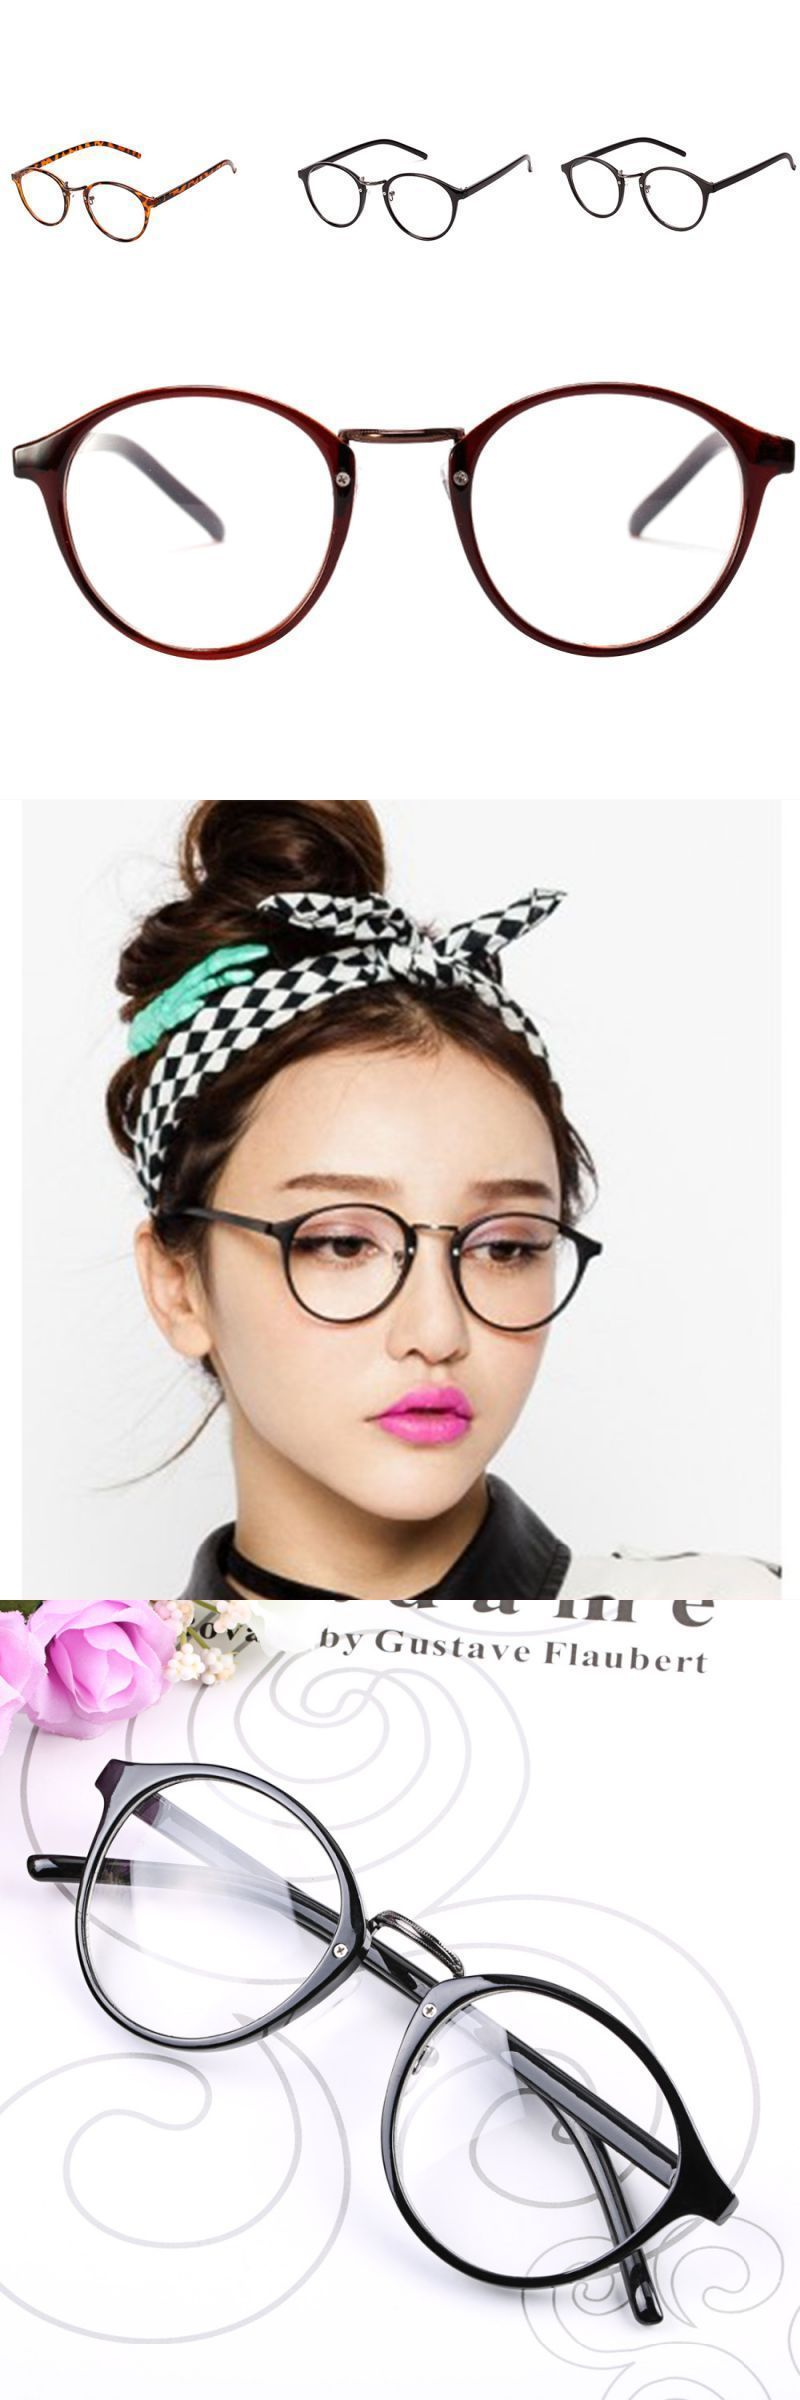 493b8792a96 Hot sell mens womens vintage nerd glasses clear lens eyewear unisex retro  plain clear eyeglasses spectacles 4colors  eyewear  accessories  frames   solid ...